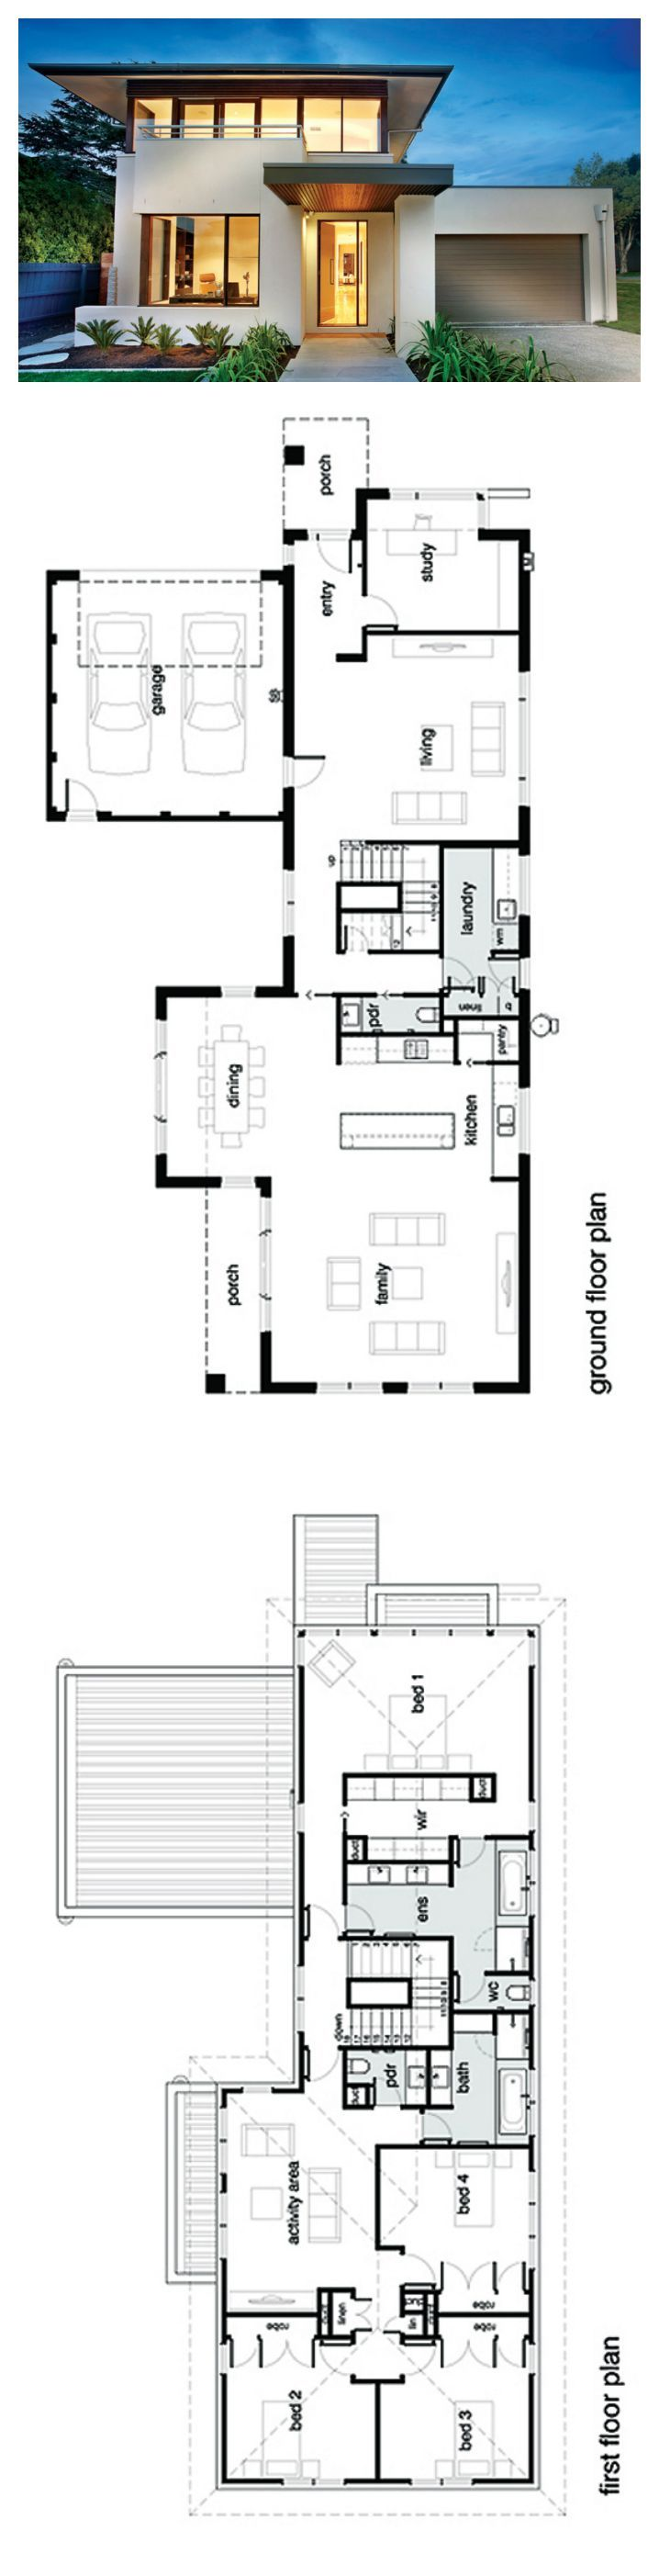 Best 25 modern house plans ideas on pinterest for Modern building plans